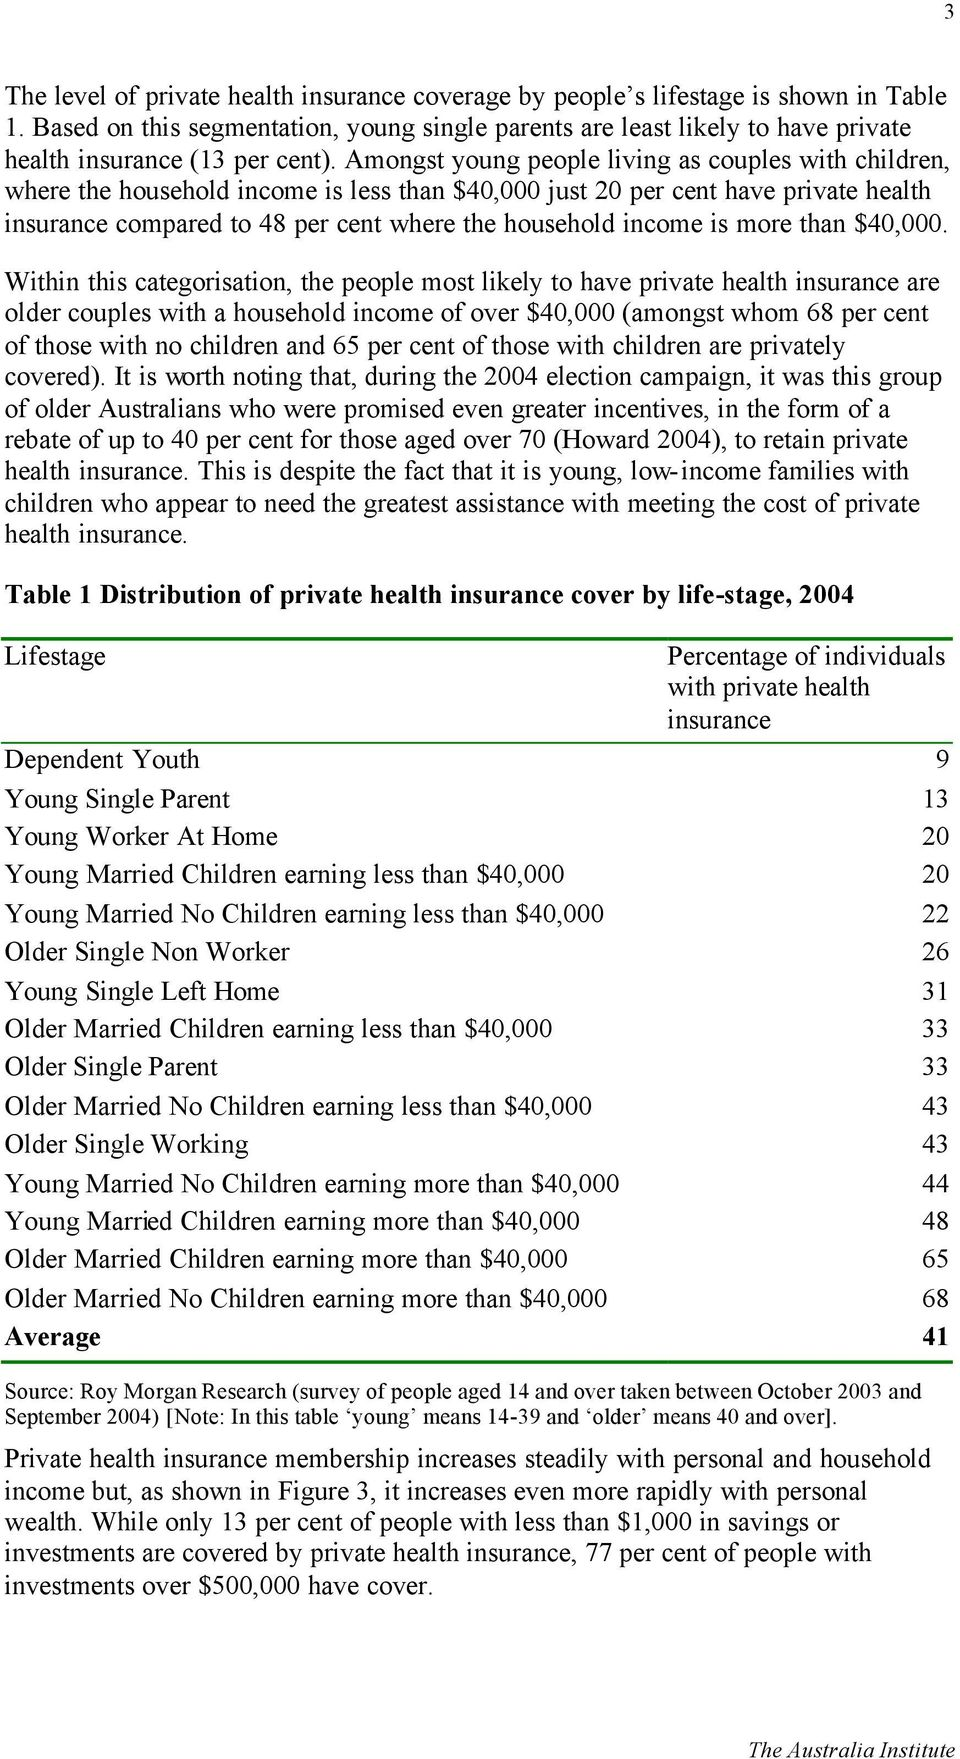 Amongst young people living as couples with children, where the household income is less than $40,000 just 20 per cent have private health insurance compared to 48 per cent where the household income